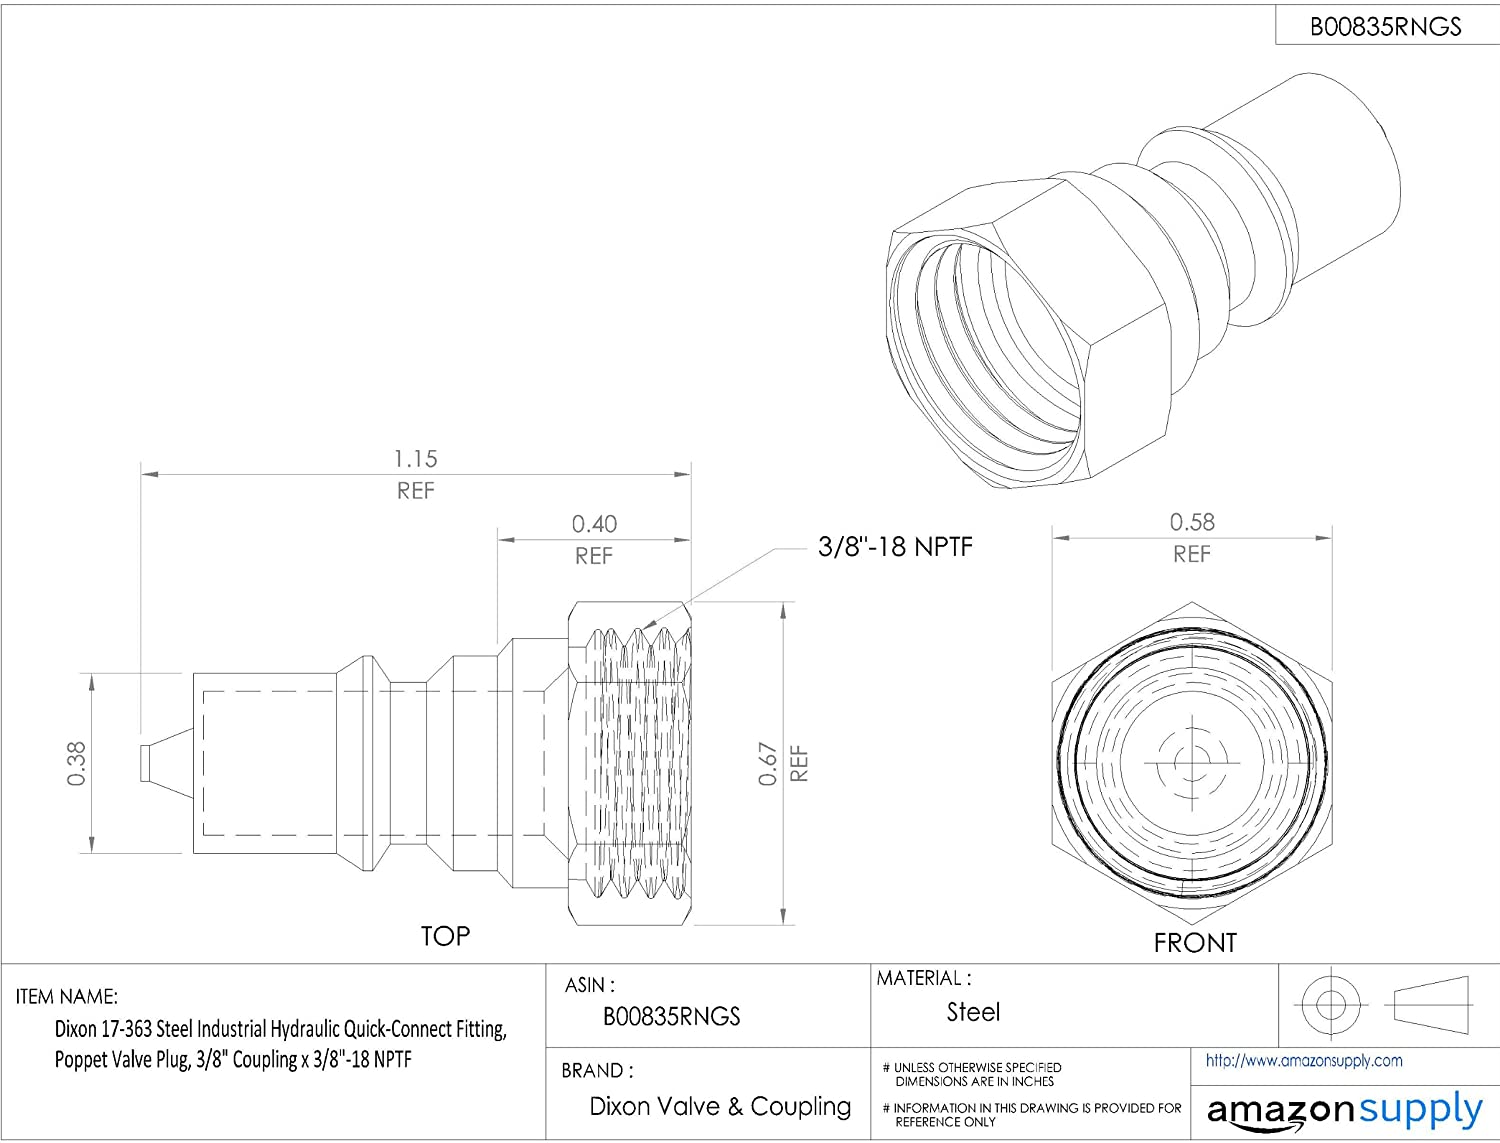 Dixon 17 863 Steel Industrial Hydraulic Quick Connect Fitting Lawn Mower Wiring Diagram Free Download Poppet Valve Plug 1 Coupling X 11 2 Nptf Hose Fittings